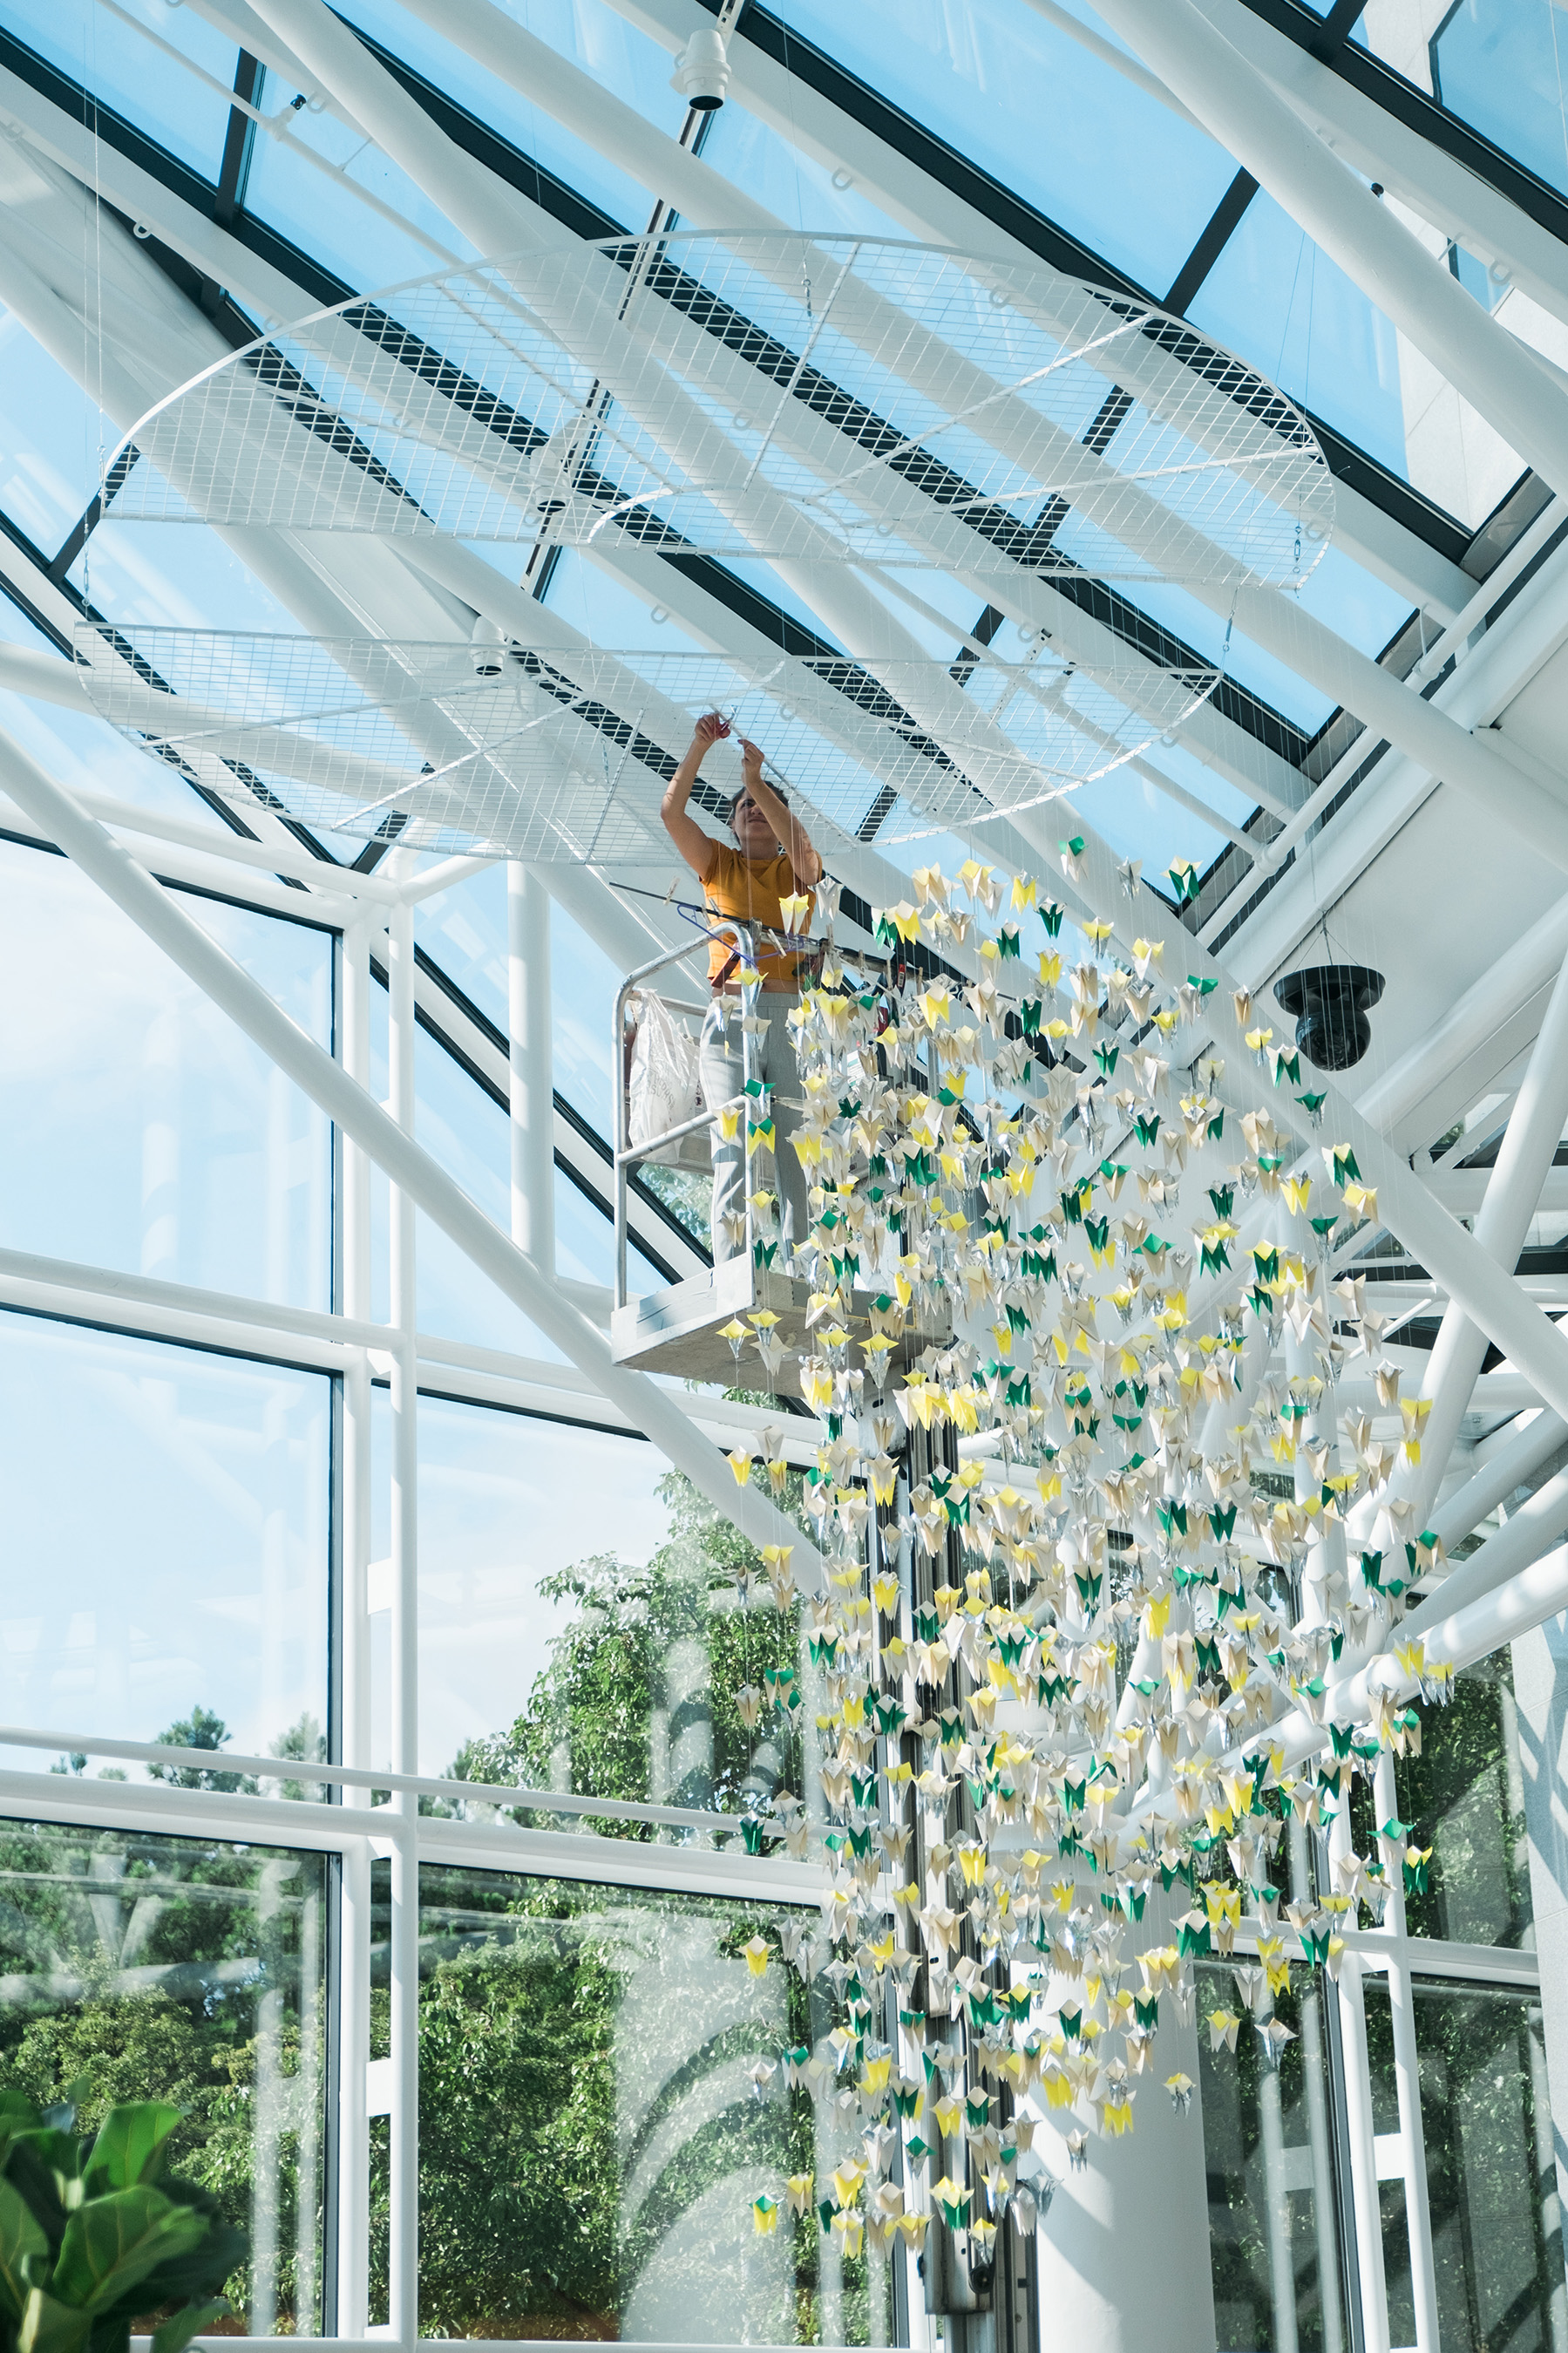 By turning the guilts into a beautiful masterpiece, the artists created an installation to serve as a reminder for parents that there is no such thing as a perfect parent, and that's perfectly okay.